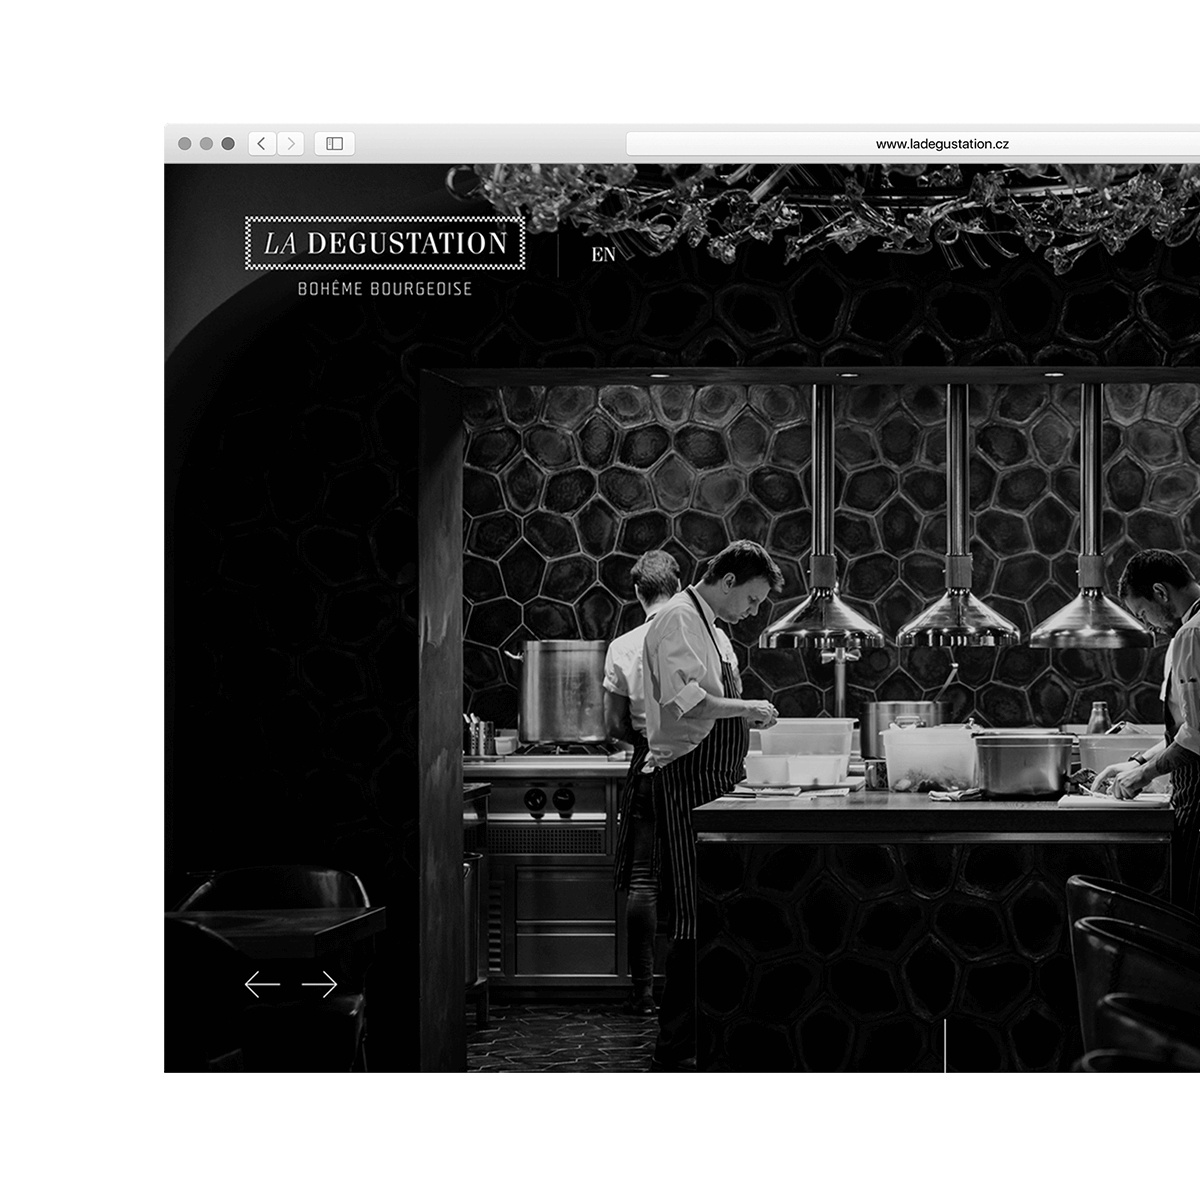 La Degustation Bohême Bourgeoise – website